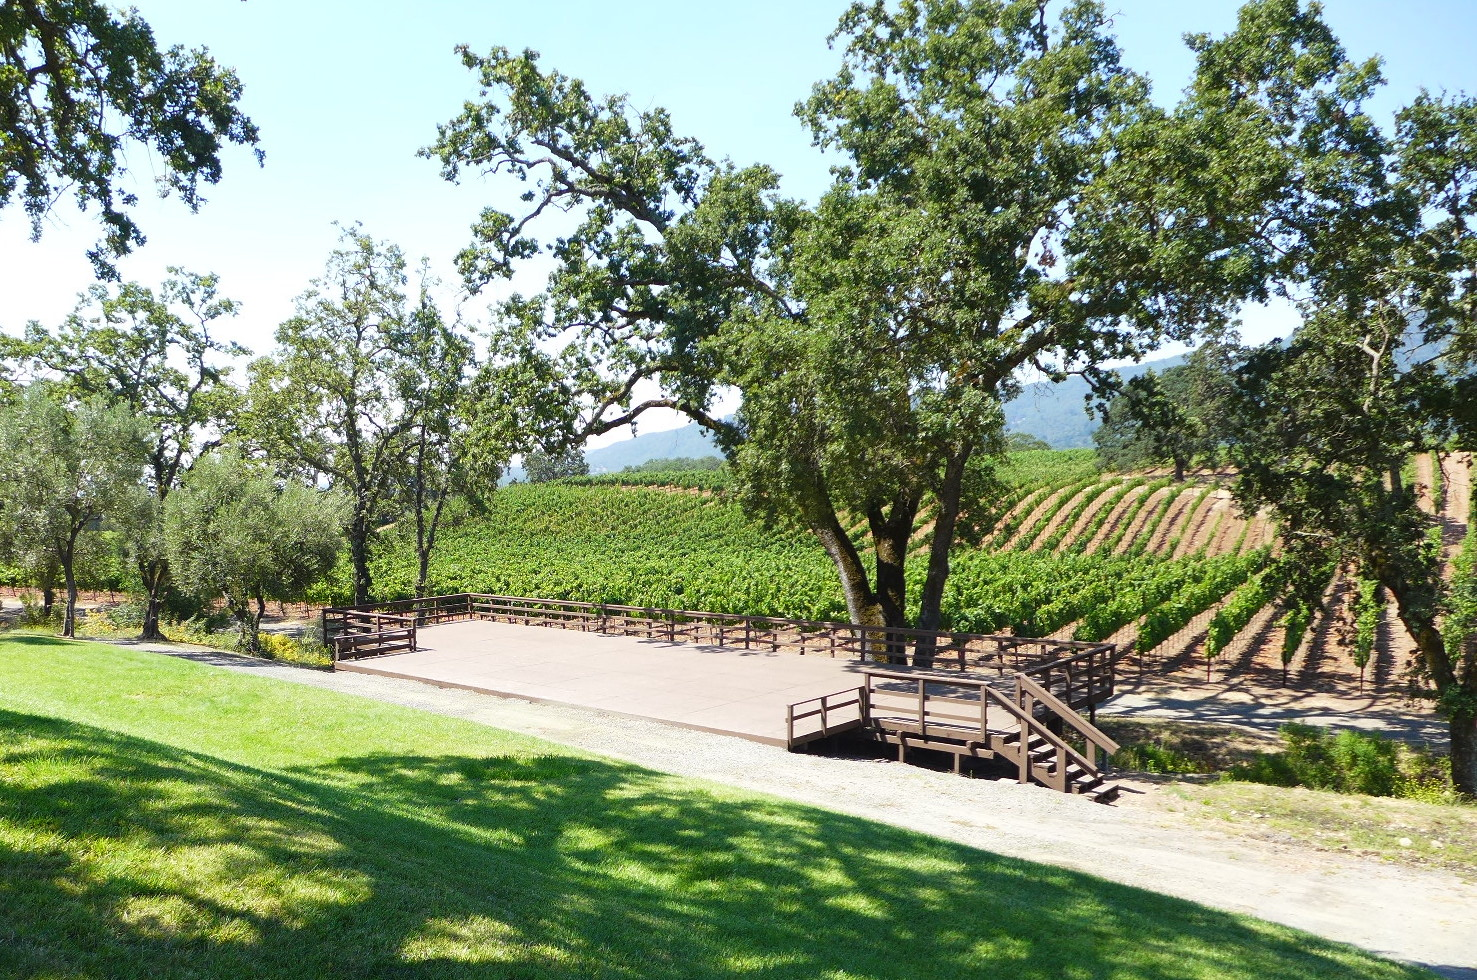 """<head>  <style type=""""text/css"""">   a:link,a:visited {   }   a:hover {   }  </style> </head> <h3>  <a href=""""https://brcohn.com/private-events/"""" target=""""_blank"""">B.R. Cohn Winery</a> </h3>"""